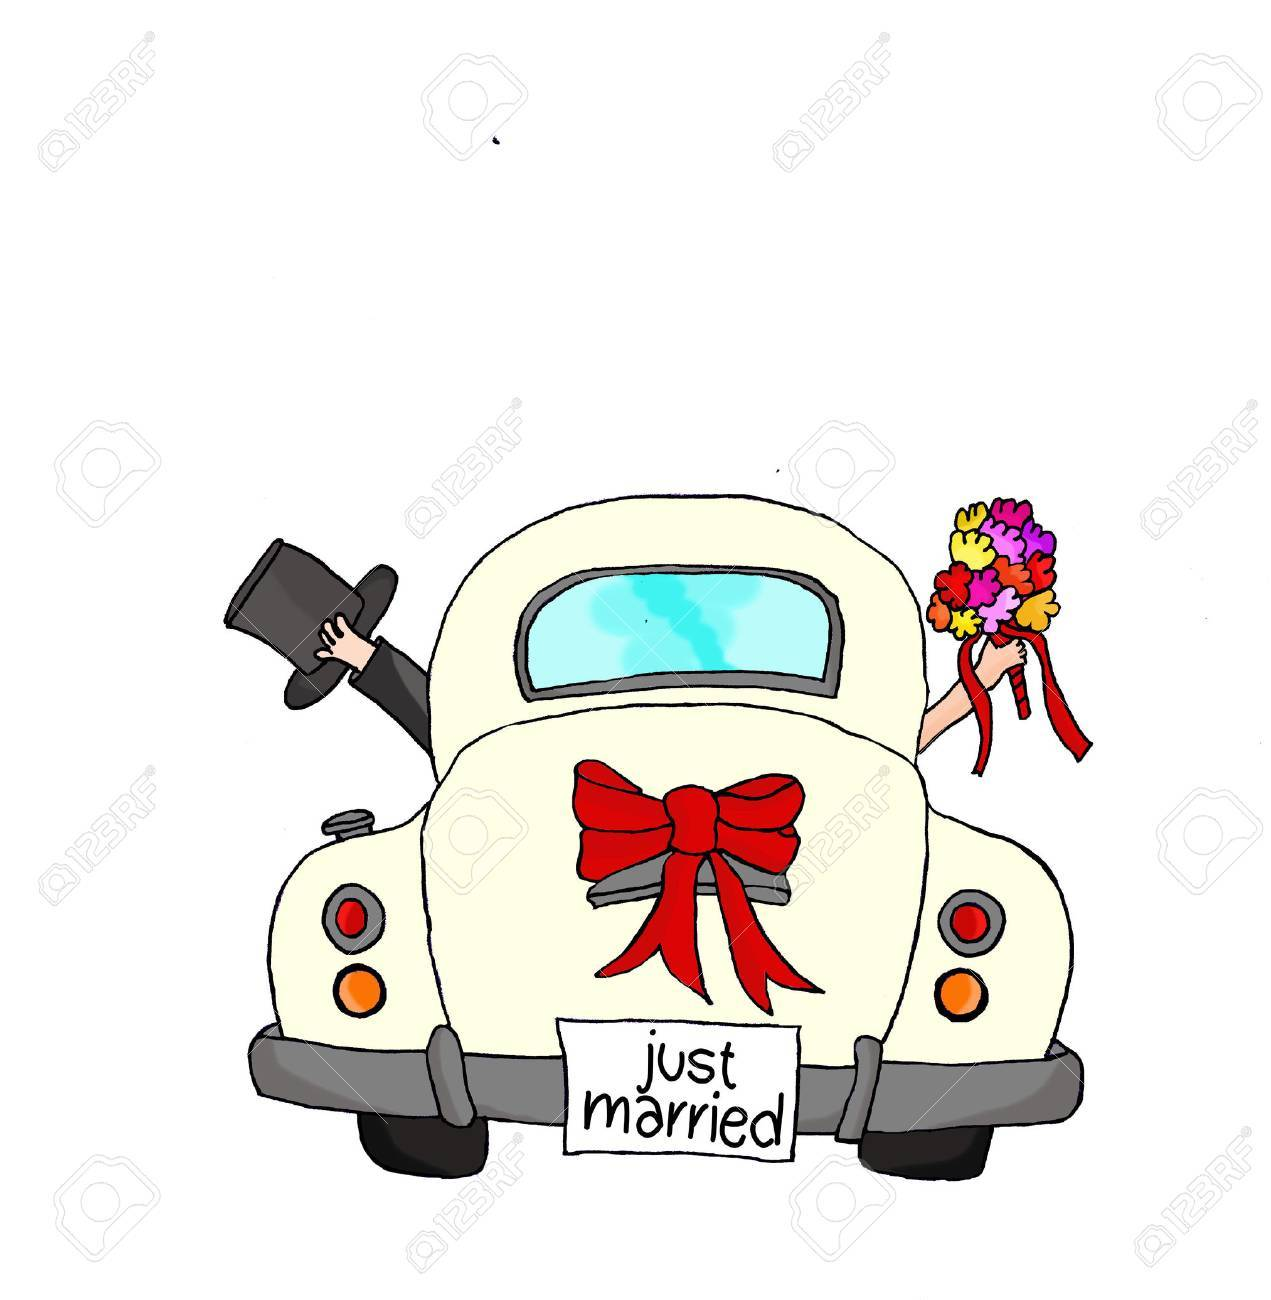 Just married auto clipart 4 » Clipart Portal.